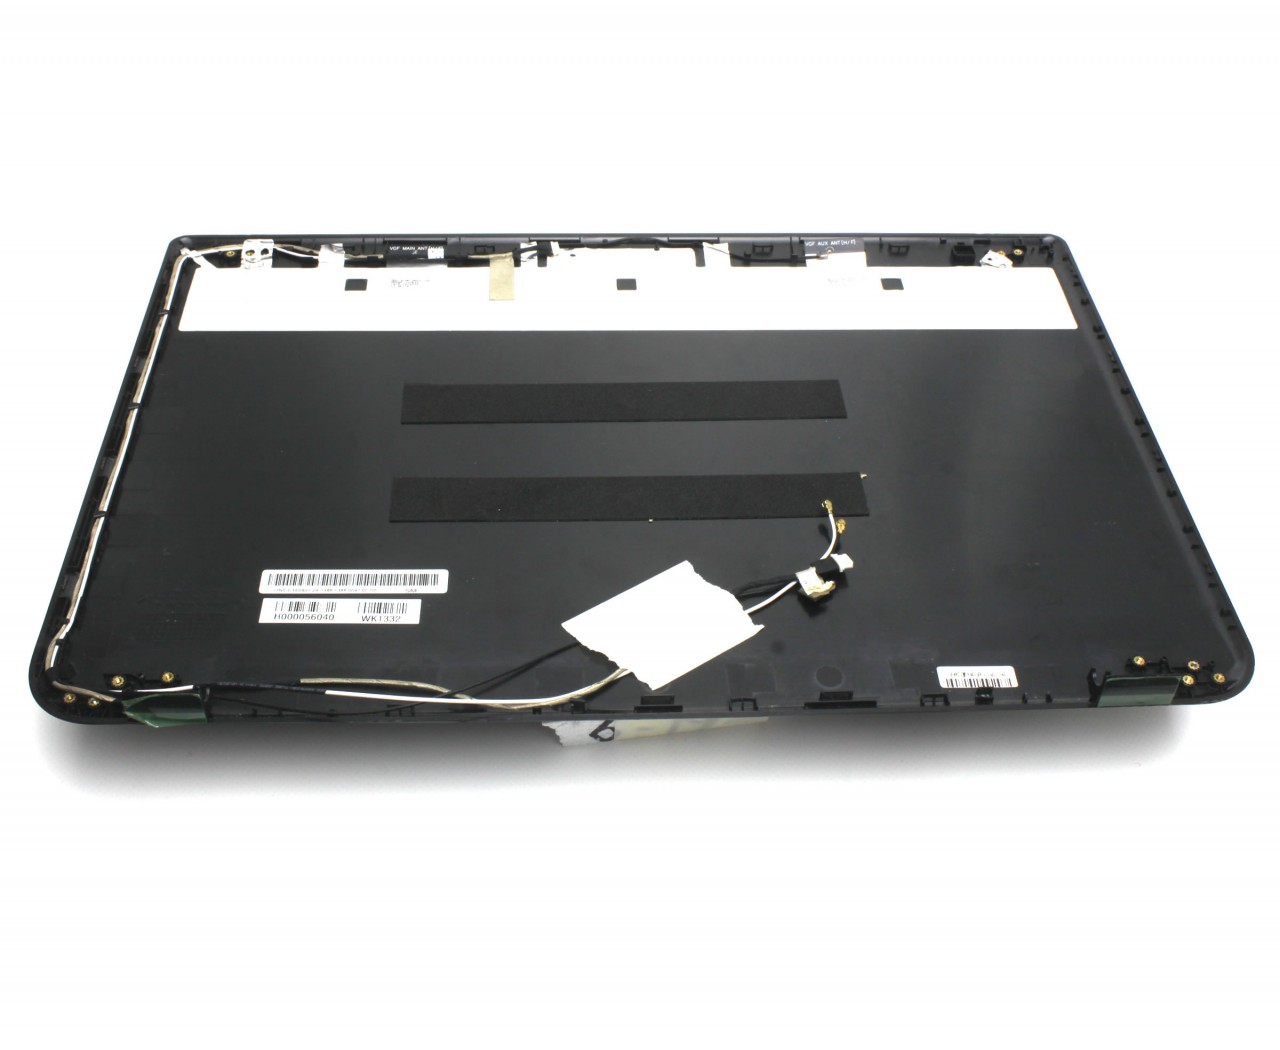 Capac Display BackCover Toshiba Satellite S50 A Carcasa Display Neagra imagine powerlaptop.ro 2021